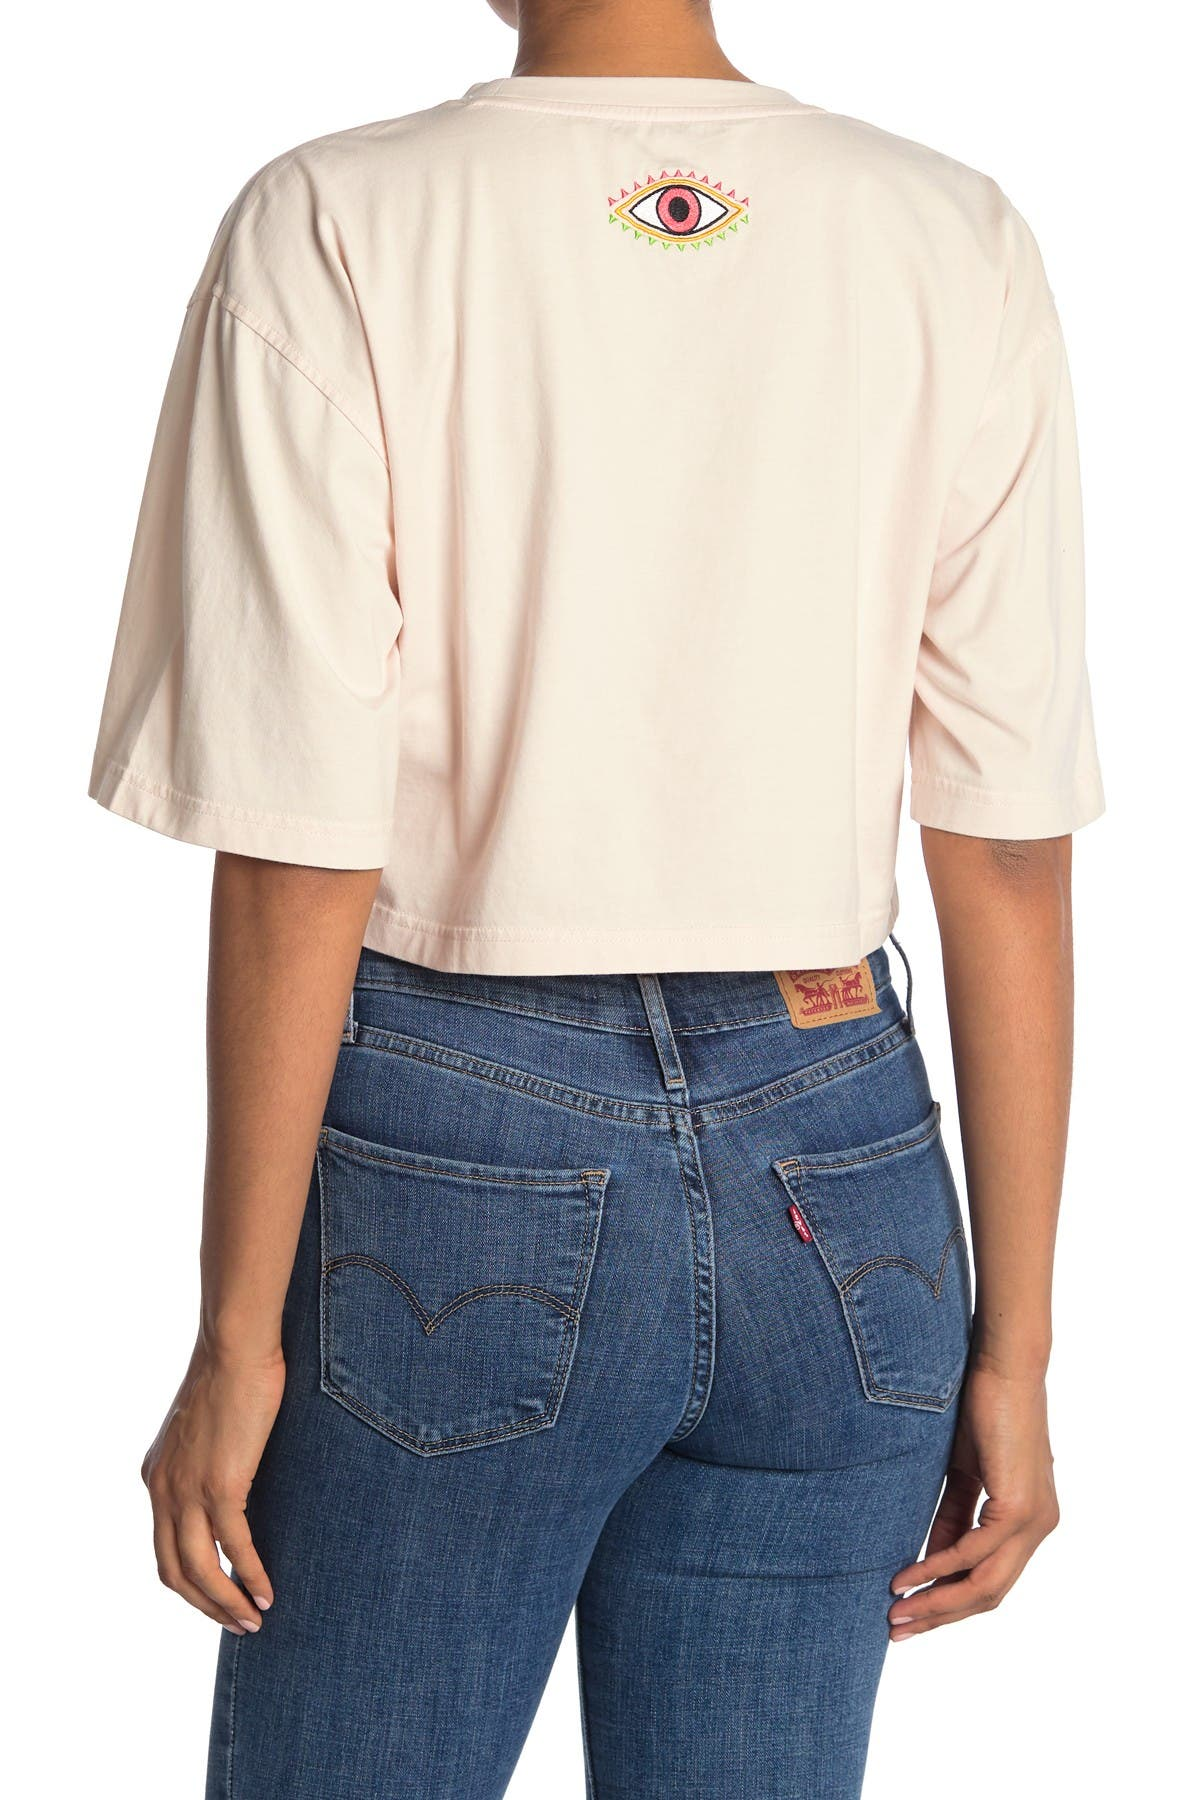 Image of Nicole Miller Cropped T-Shirt